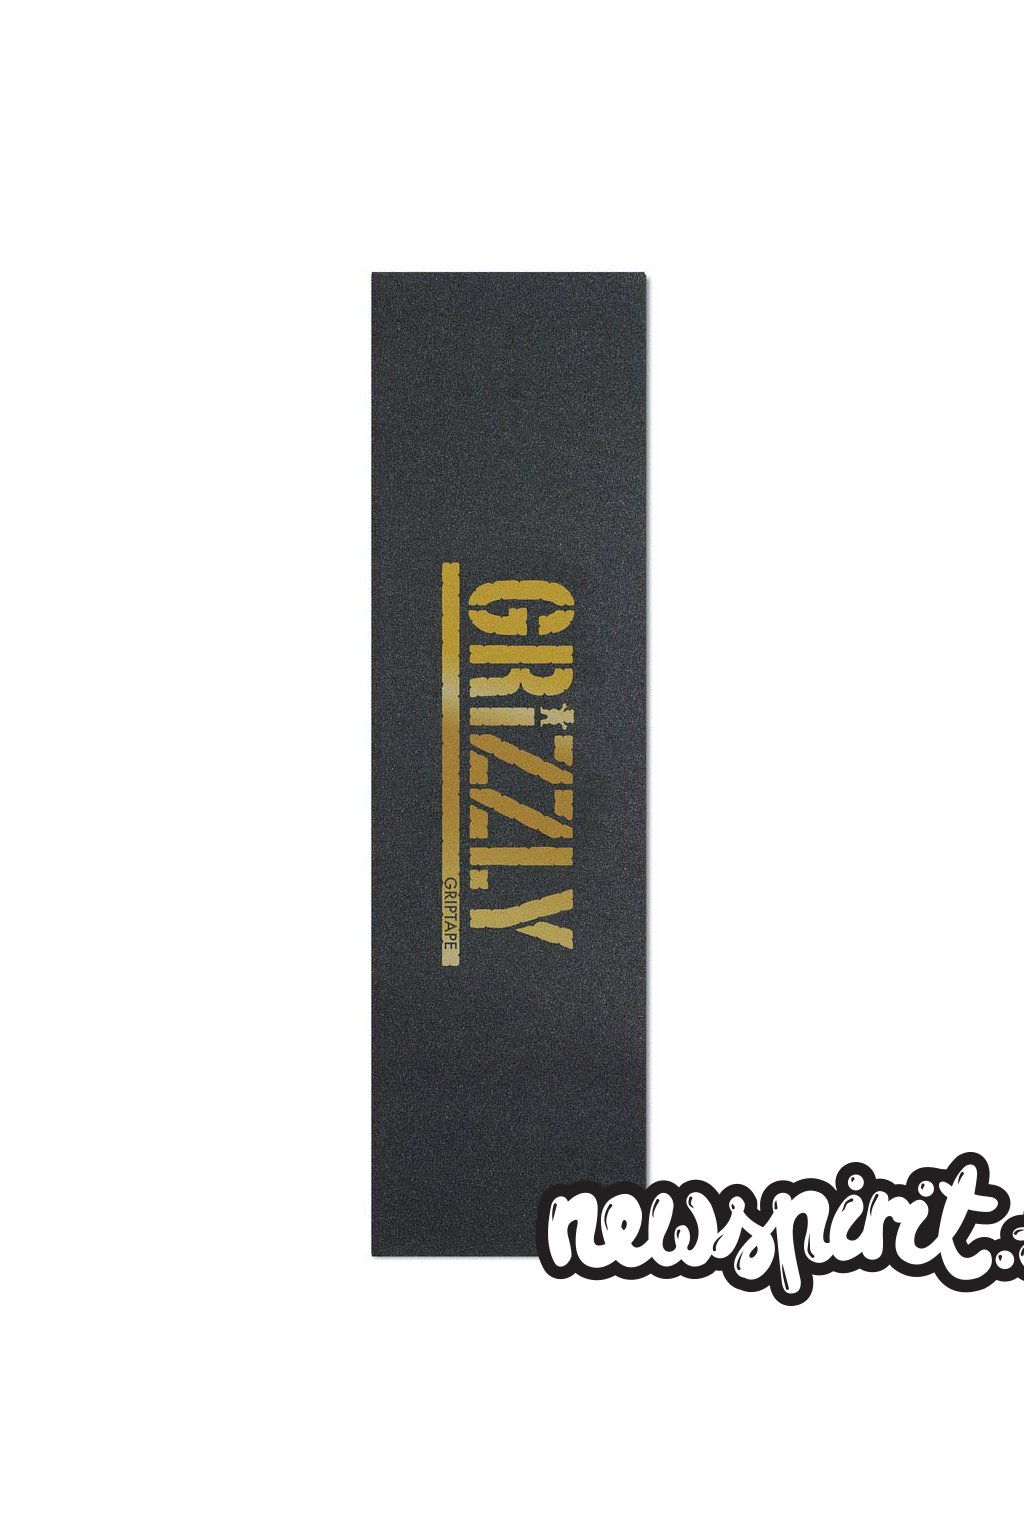 Grip Grizzly - Gold Stamp